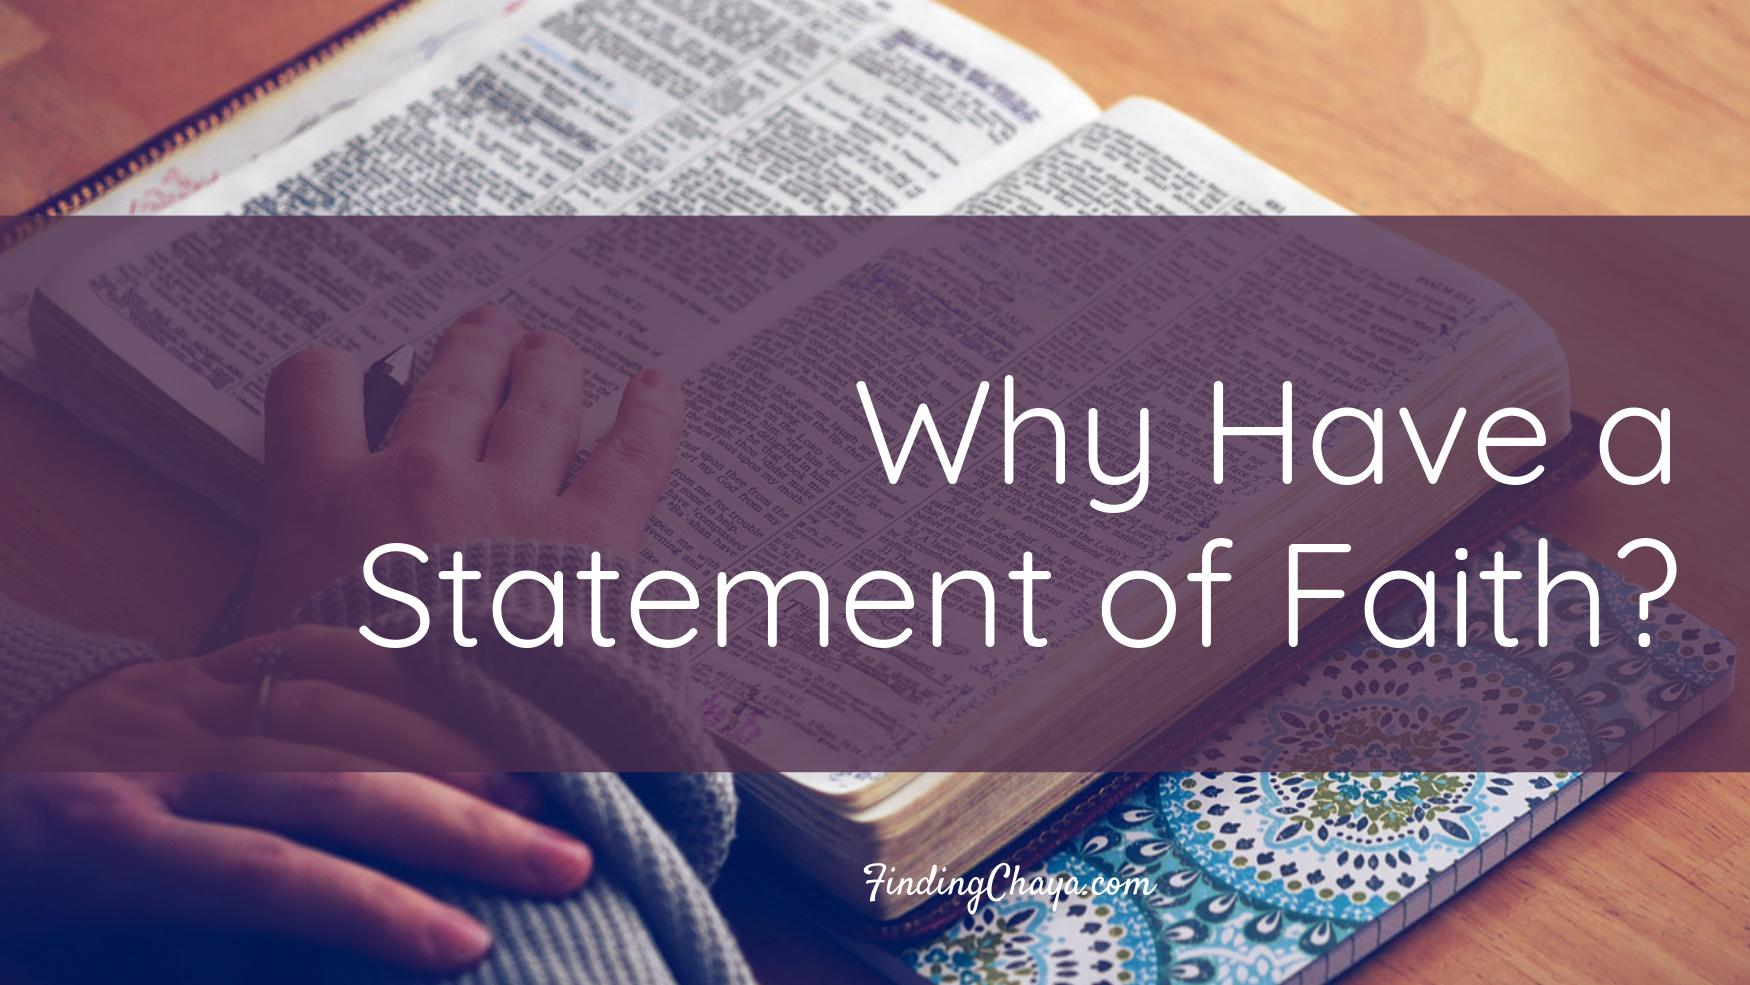 Why have a Statement of Faith?